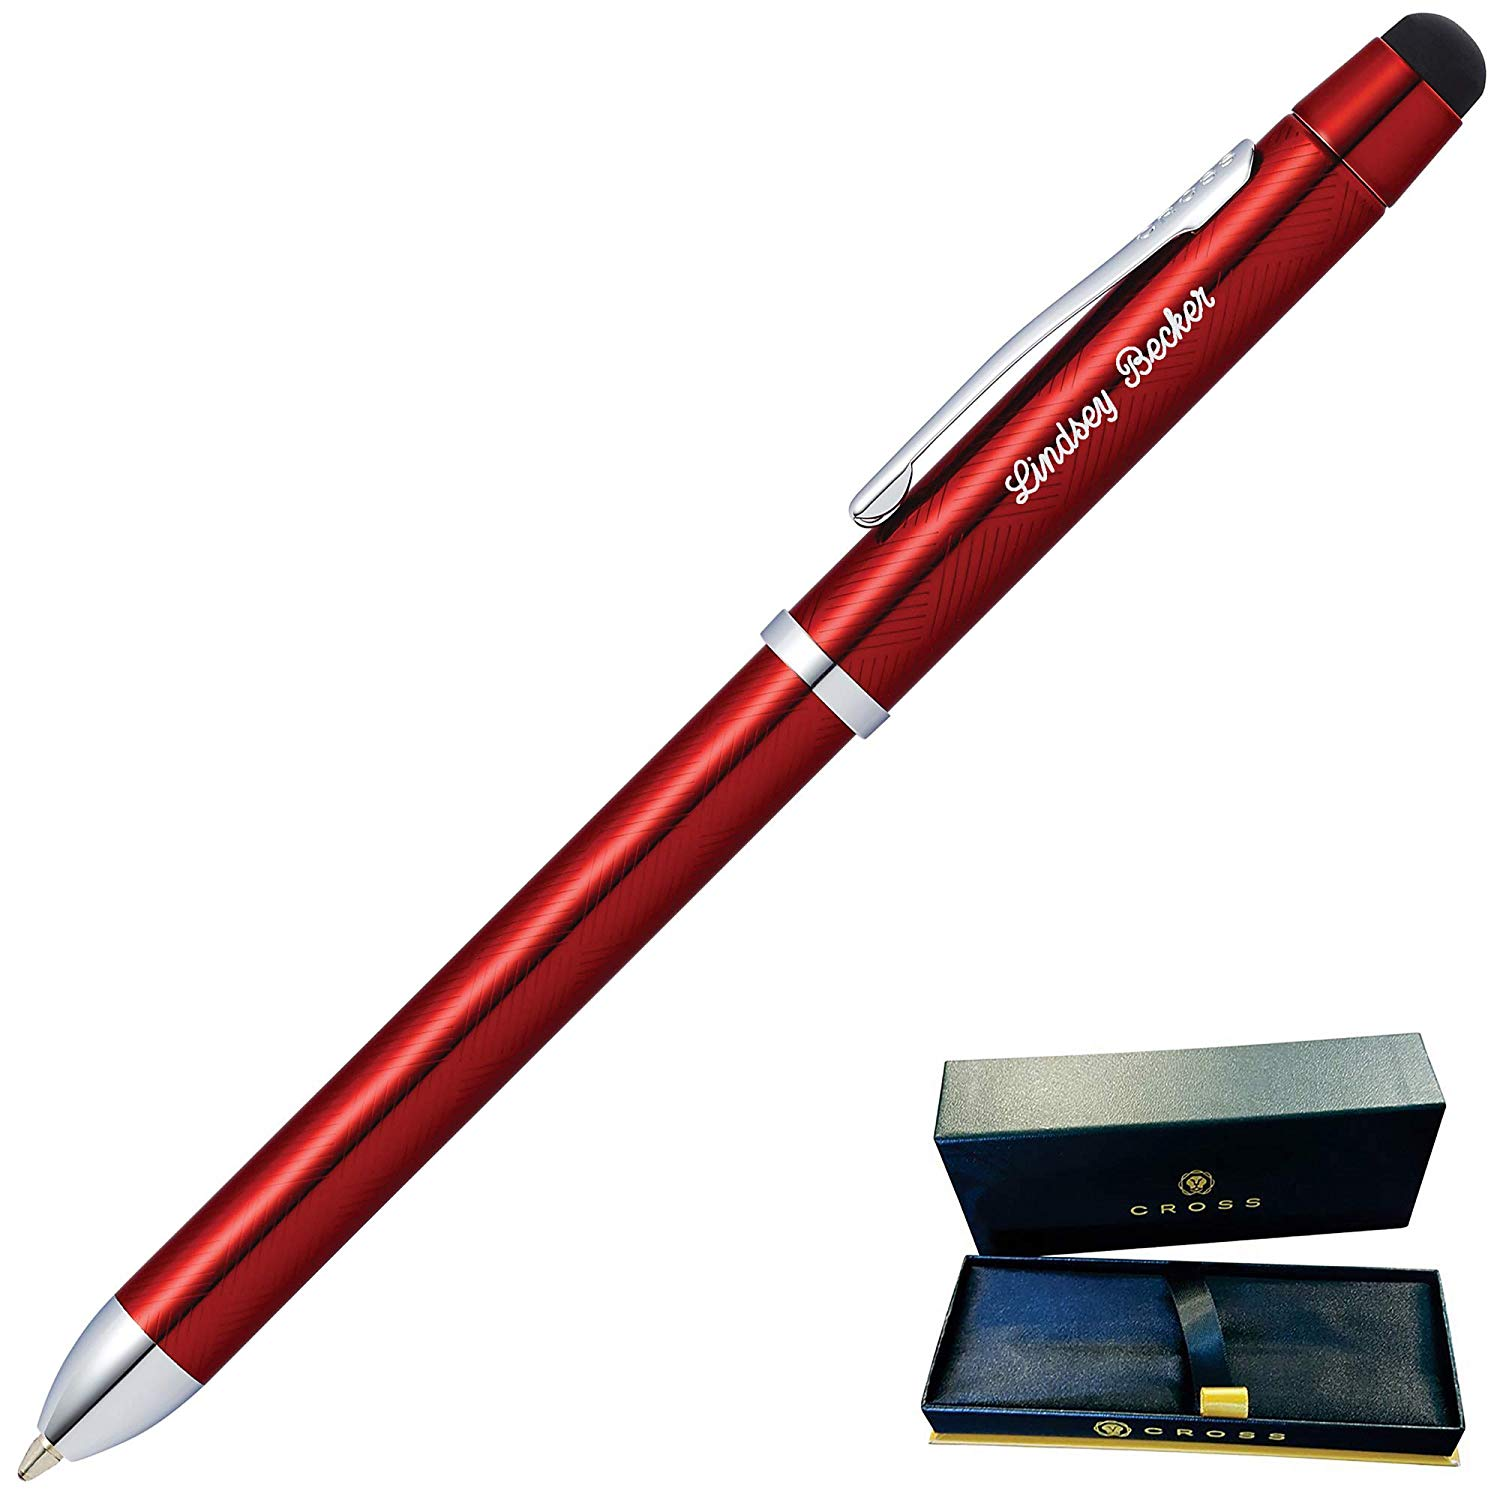 Dayspring Pens - Engraved/Personalized Cross Tech3+ Translucent Red Multifunction Pen. Custom Engraving Included!